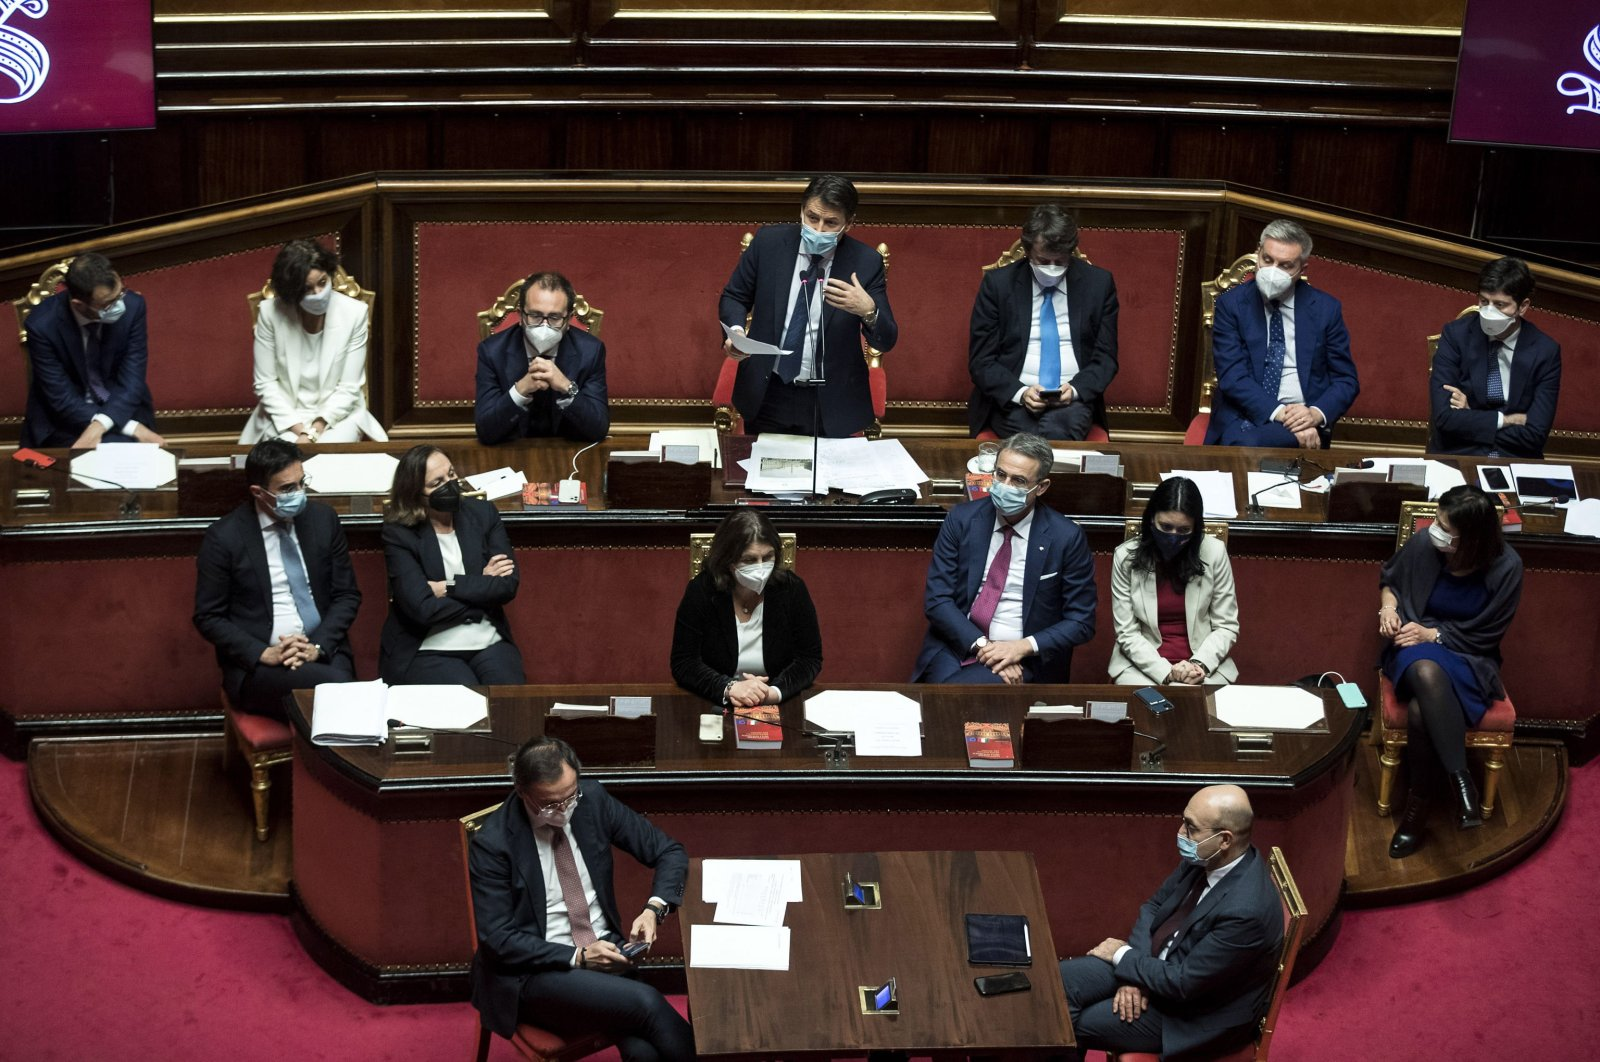 Italian Prime Minister Giuseppe Conte stands in the back row) during a debate in the Senate in Rome, Italy, Jan. 19, 2021. (EPA Photo)